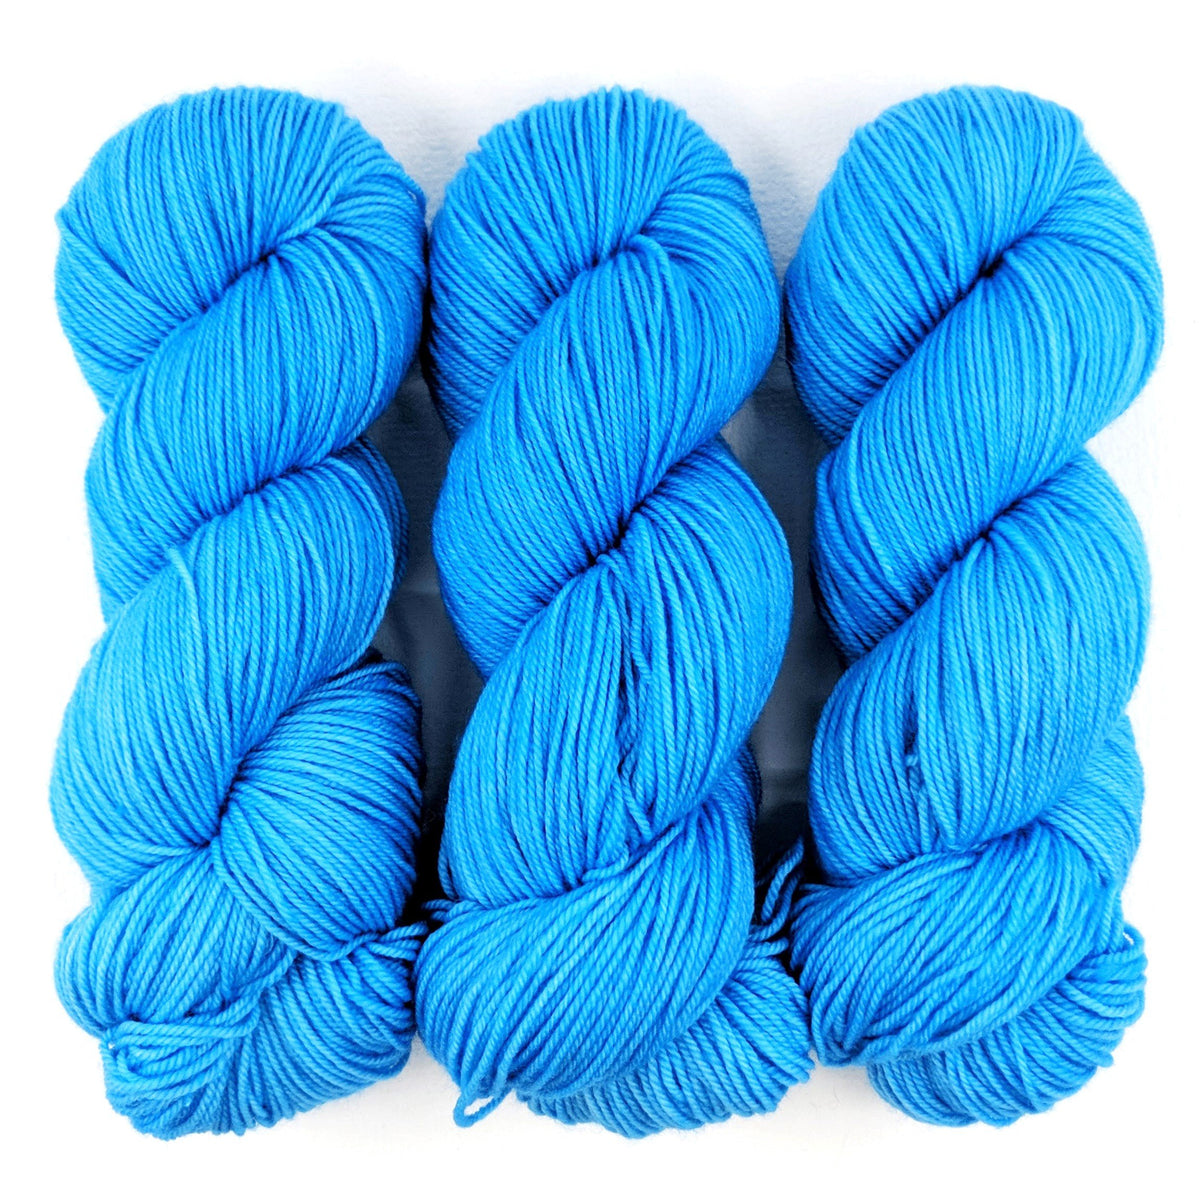 Nothing But Blue Skies in Fingering / Sock Weight